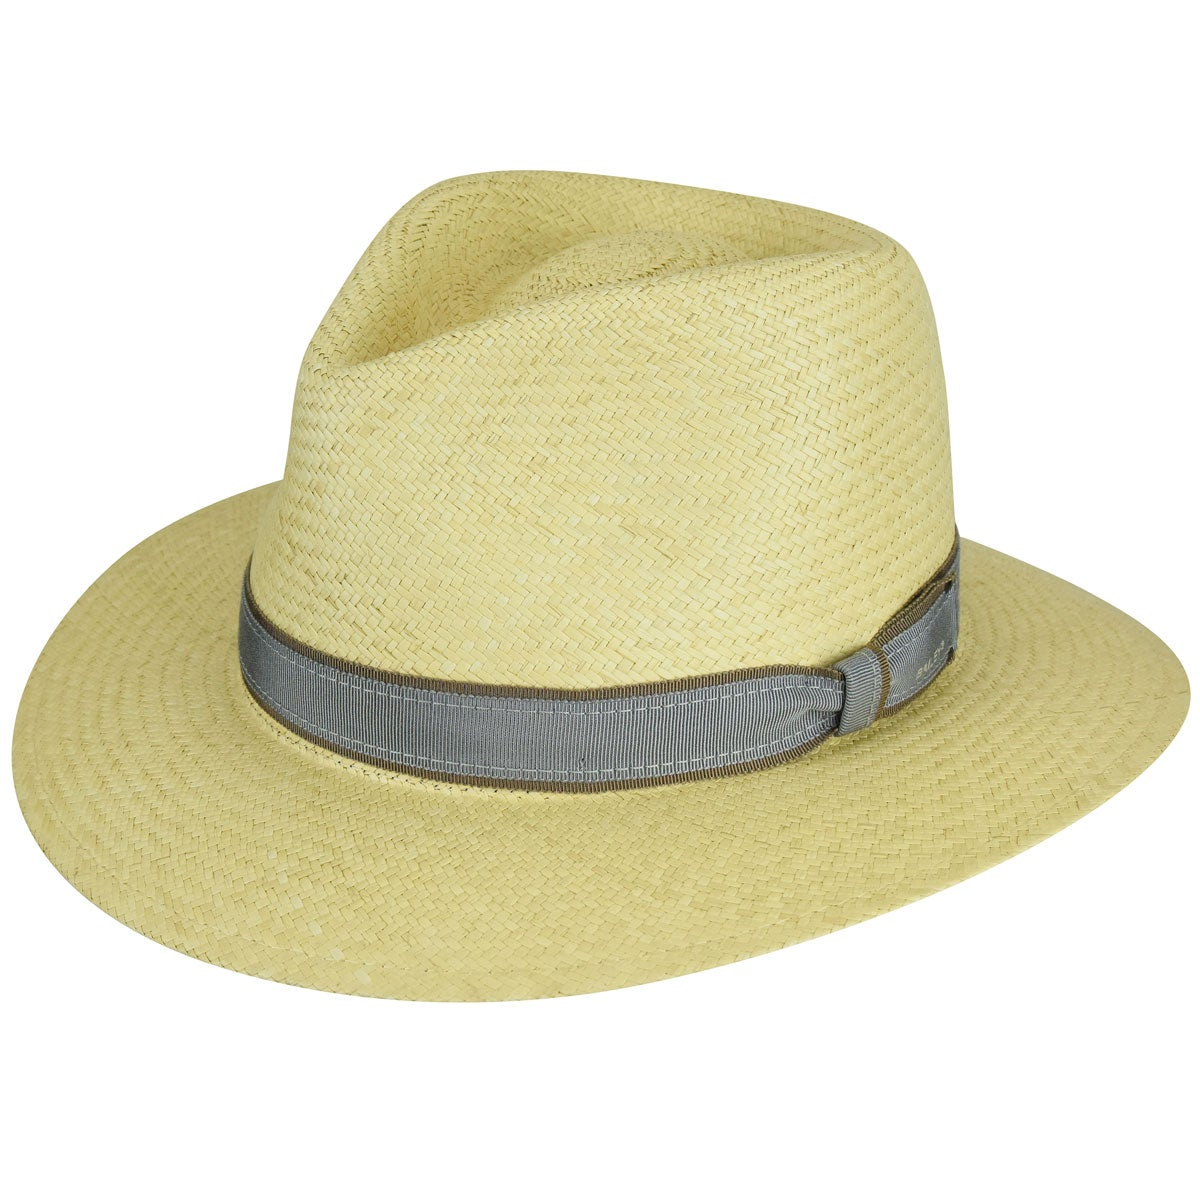 Rockabilly Men's Clothing Brooks Panama Fedora $140.00 AT vintagedancer.com